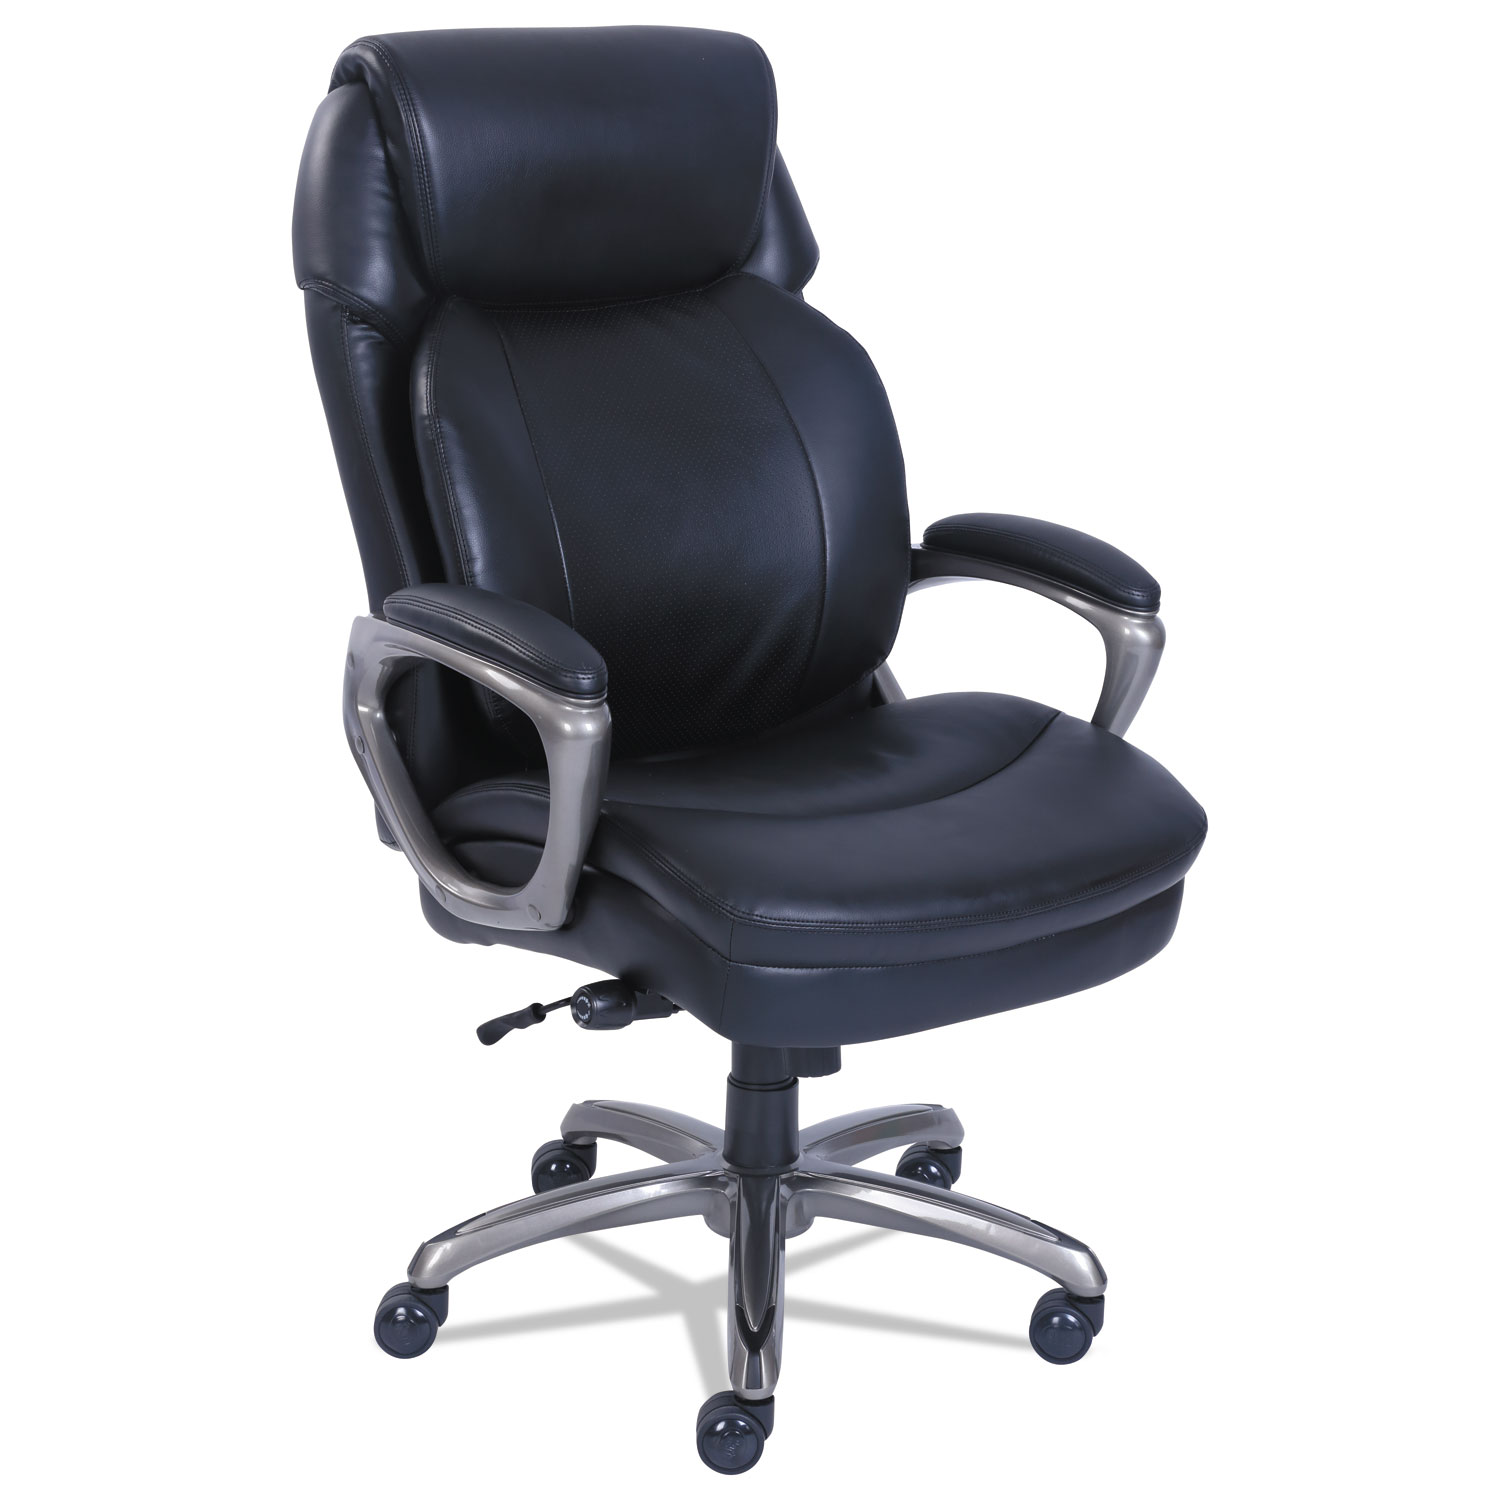 Cosset High Back Executive Chair, Black